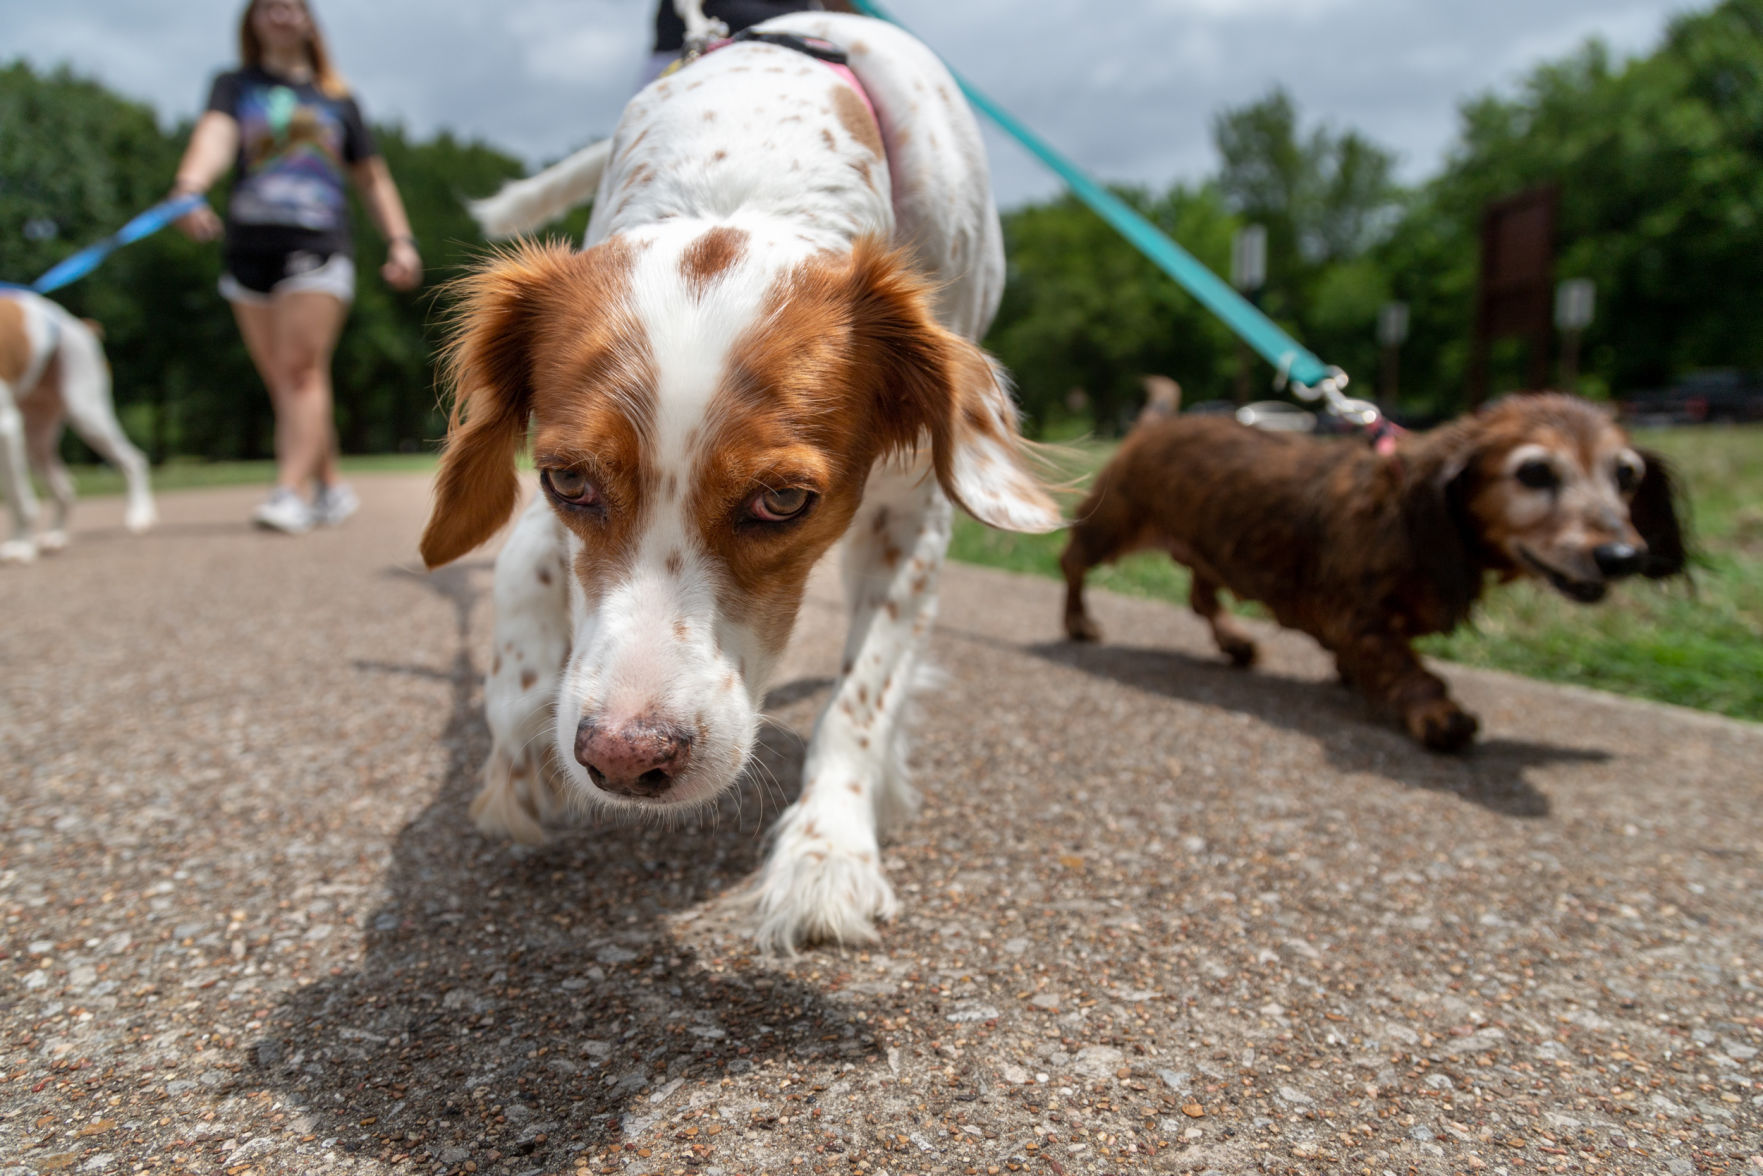 Hot dog: how to keep your pets safe during the summer